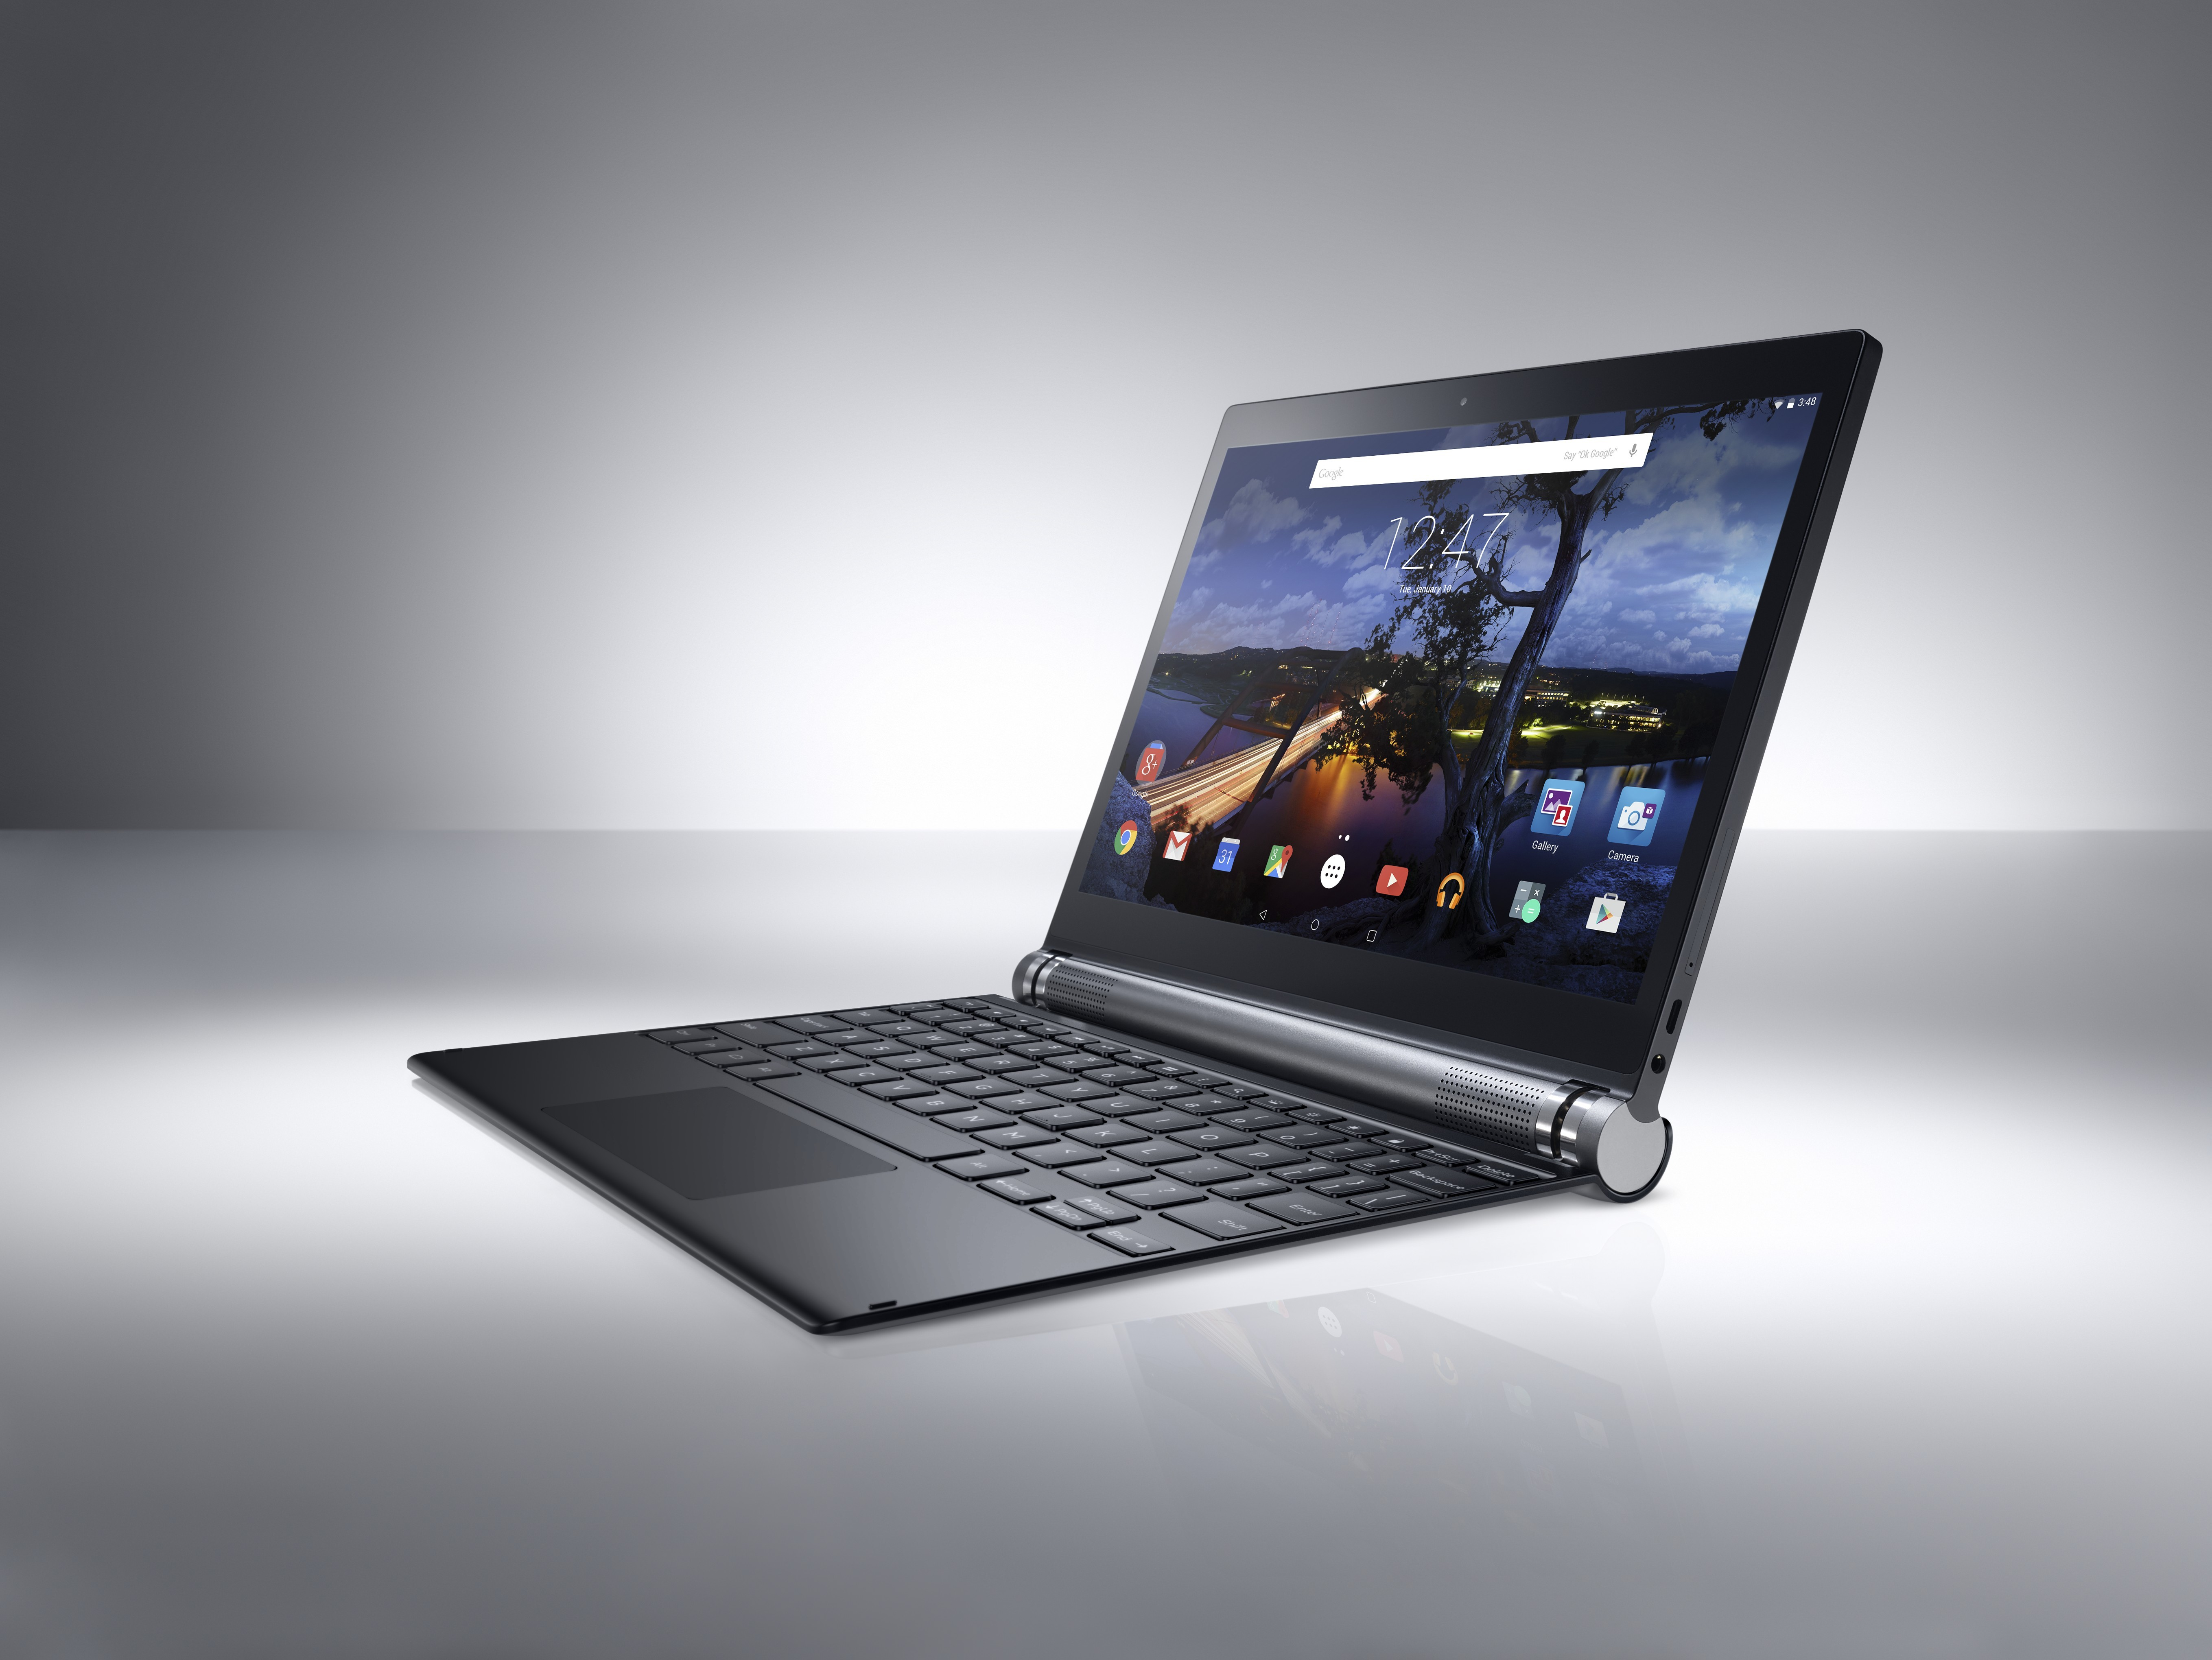 Dell Venue 10 7000: Is It Good for Business